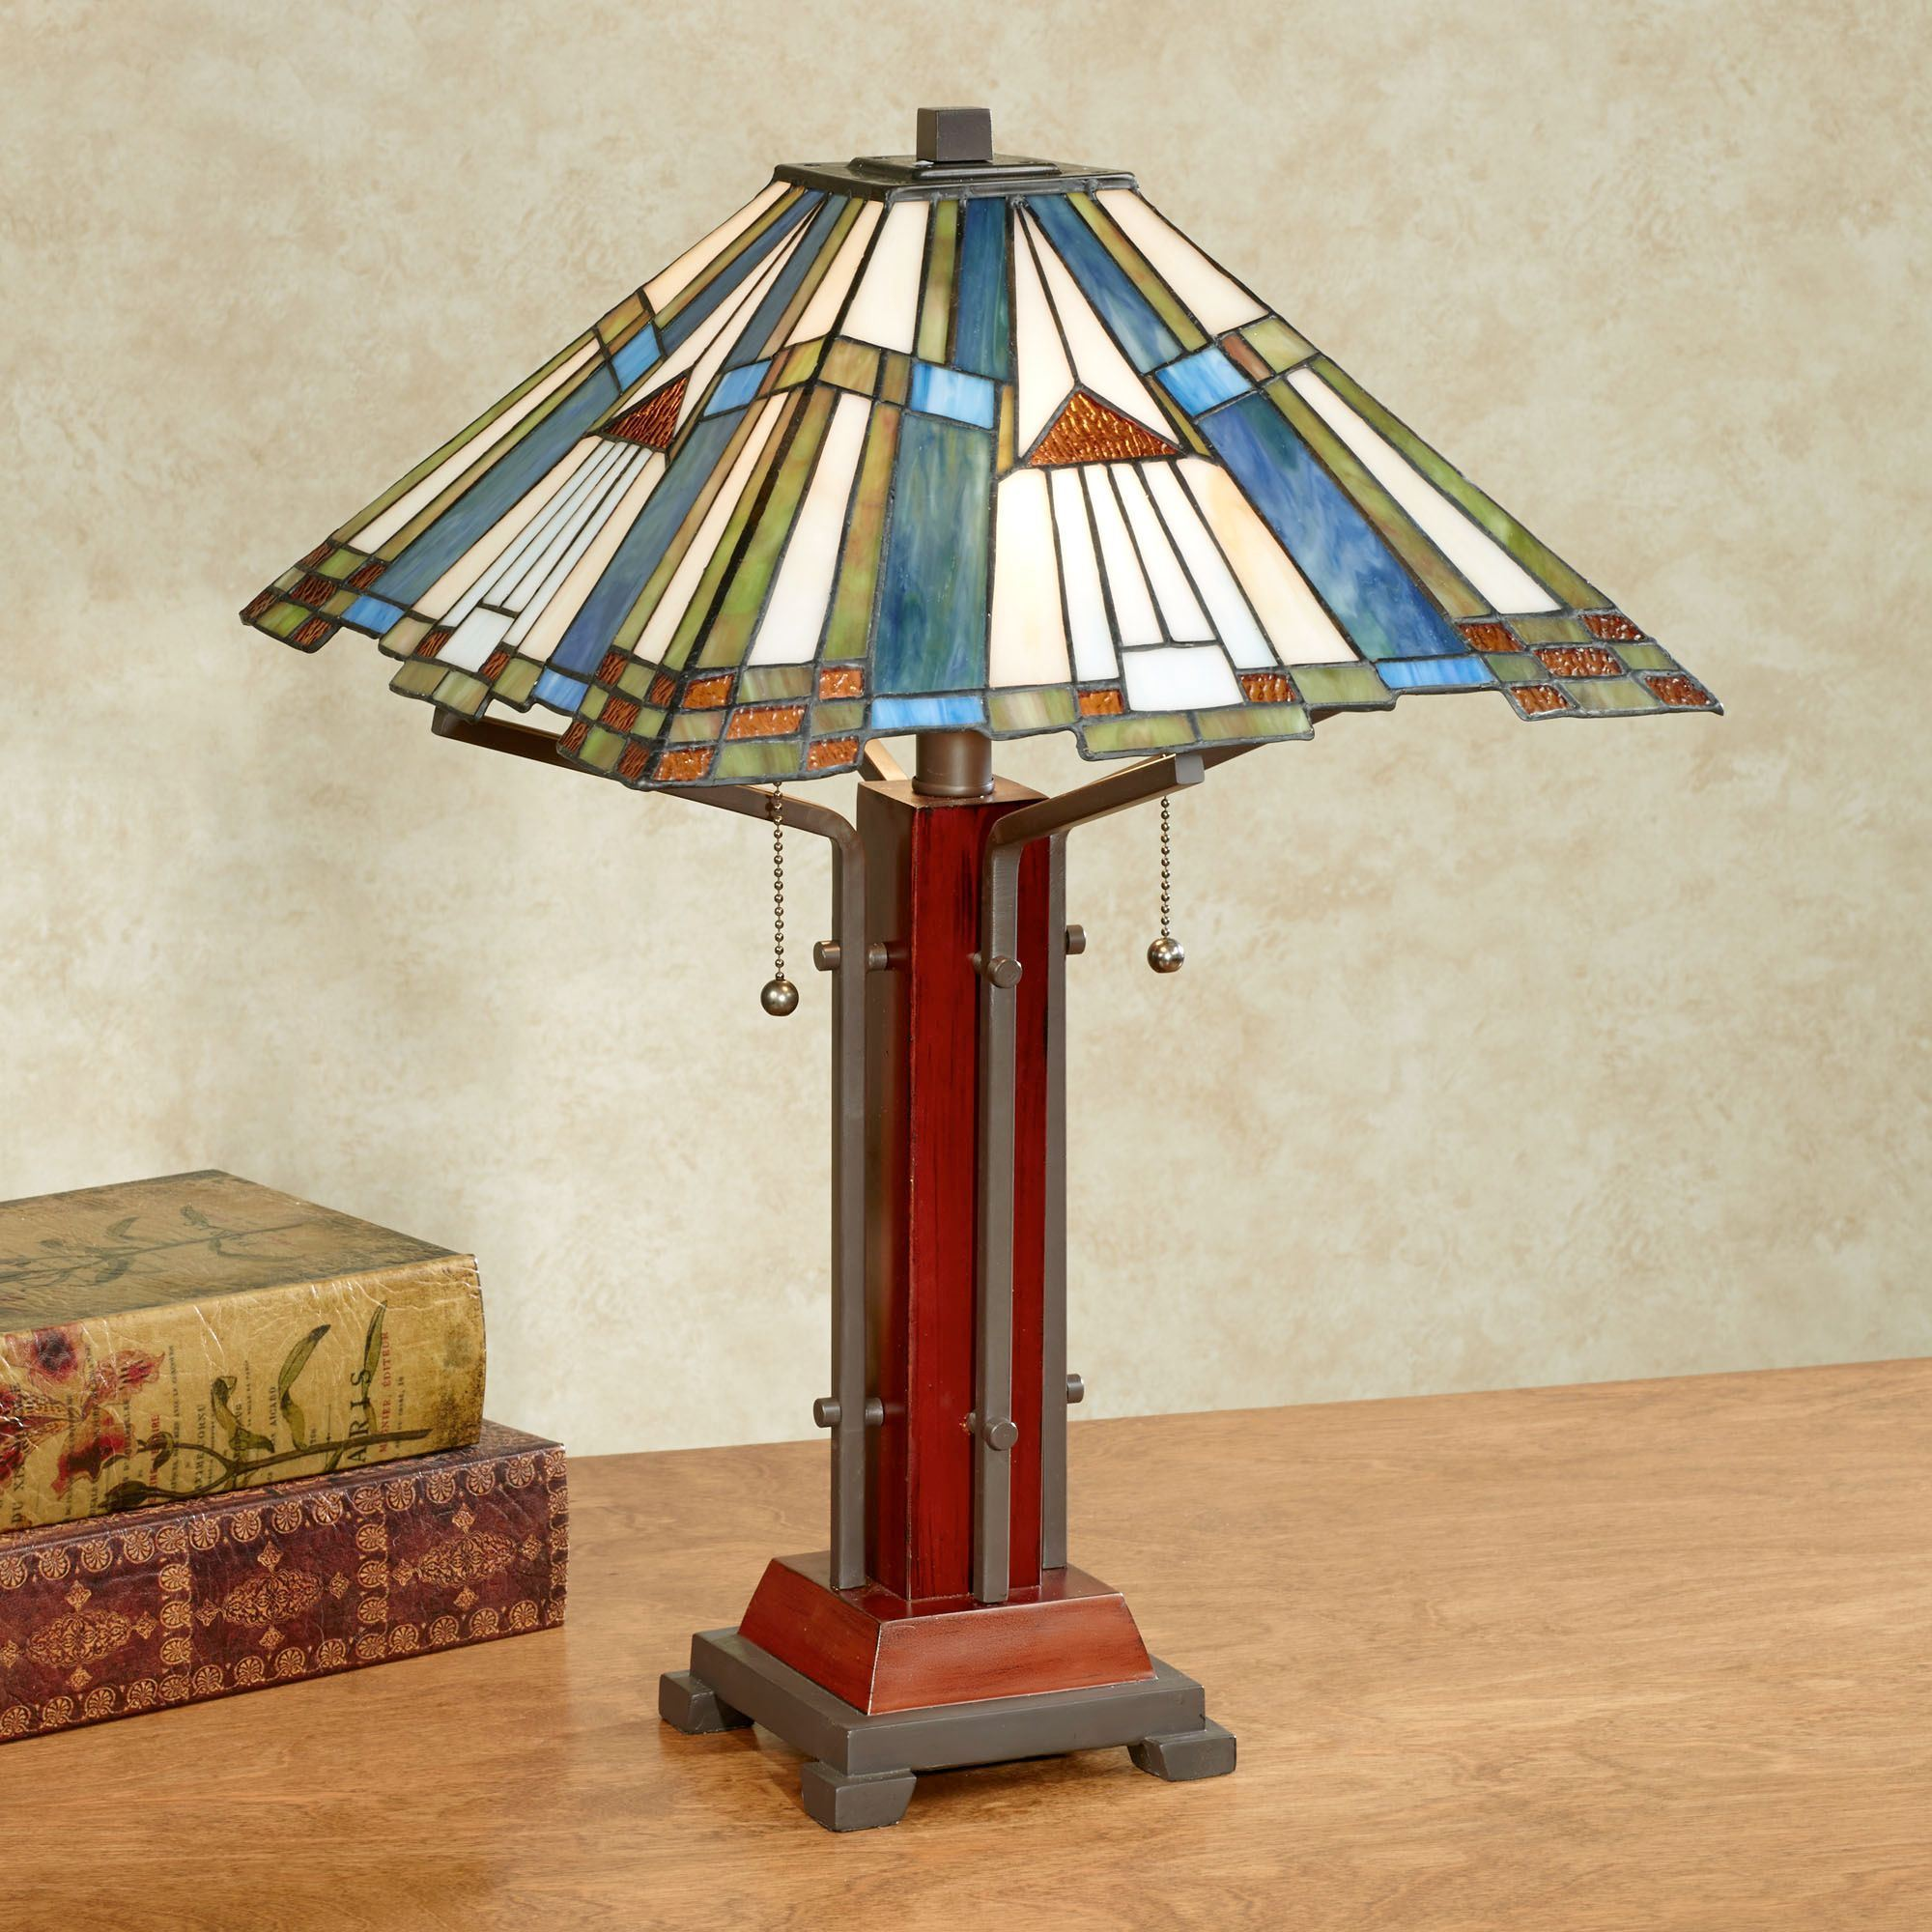 El Camino Stained Glass Table Lamp Multi Earth Each With CFL Bulbs. Click  To Expand